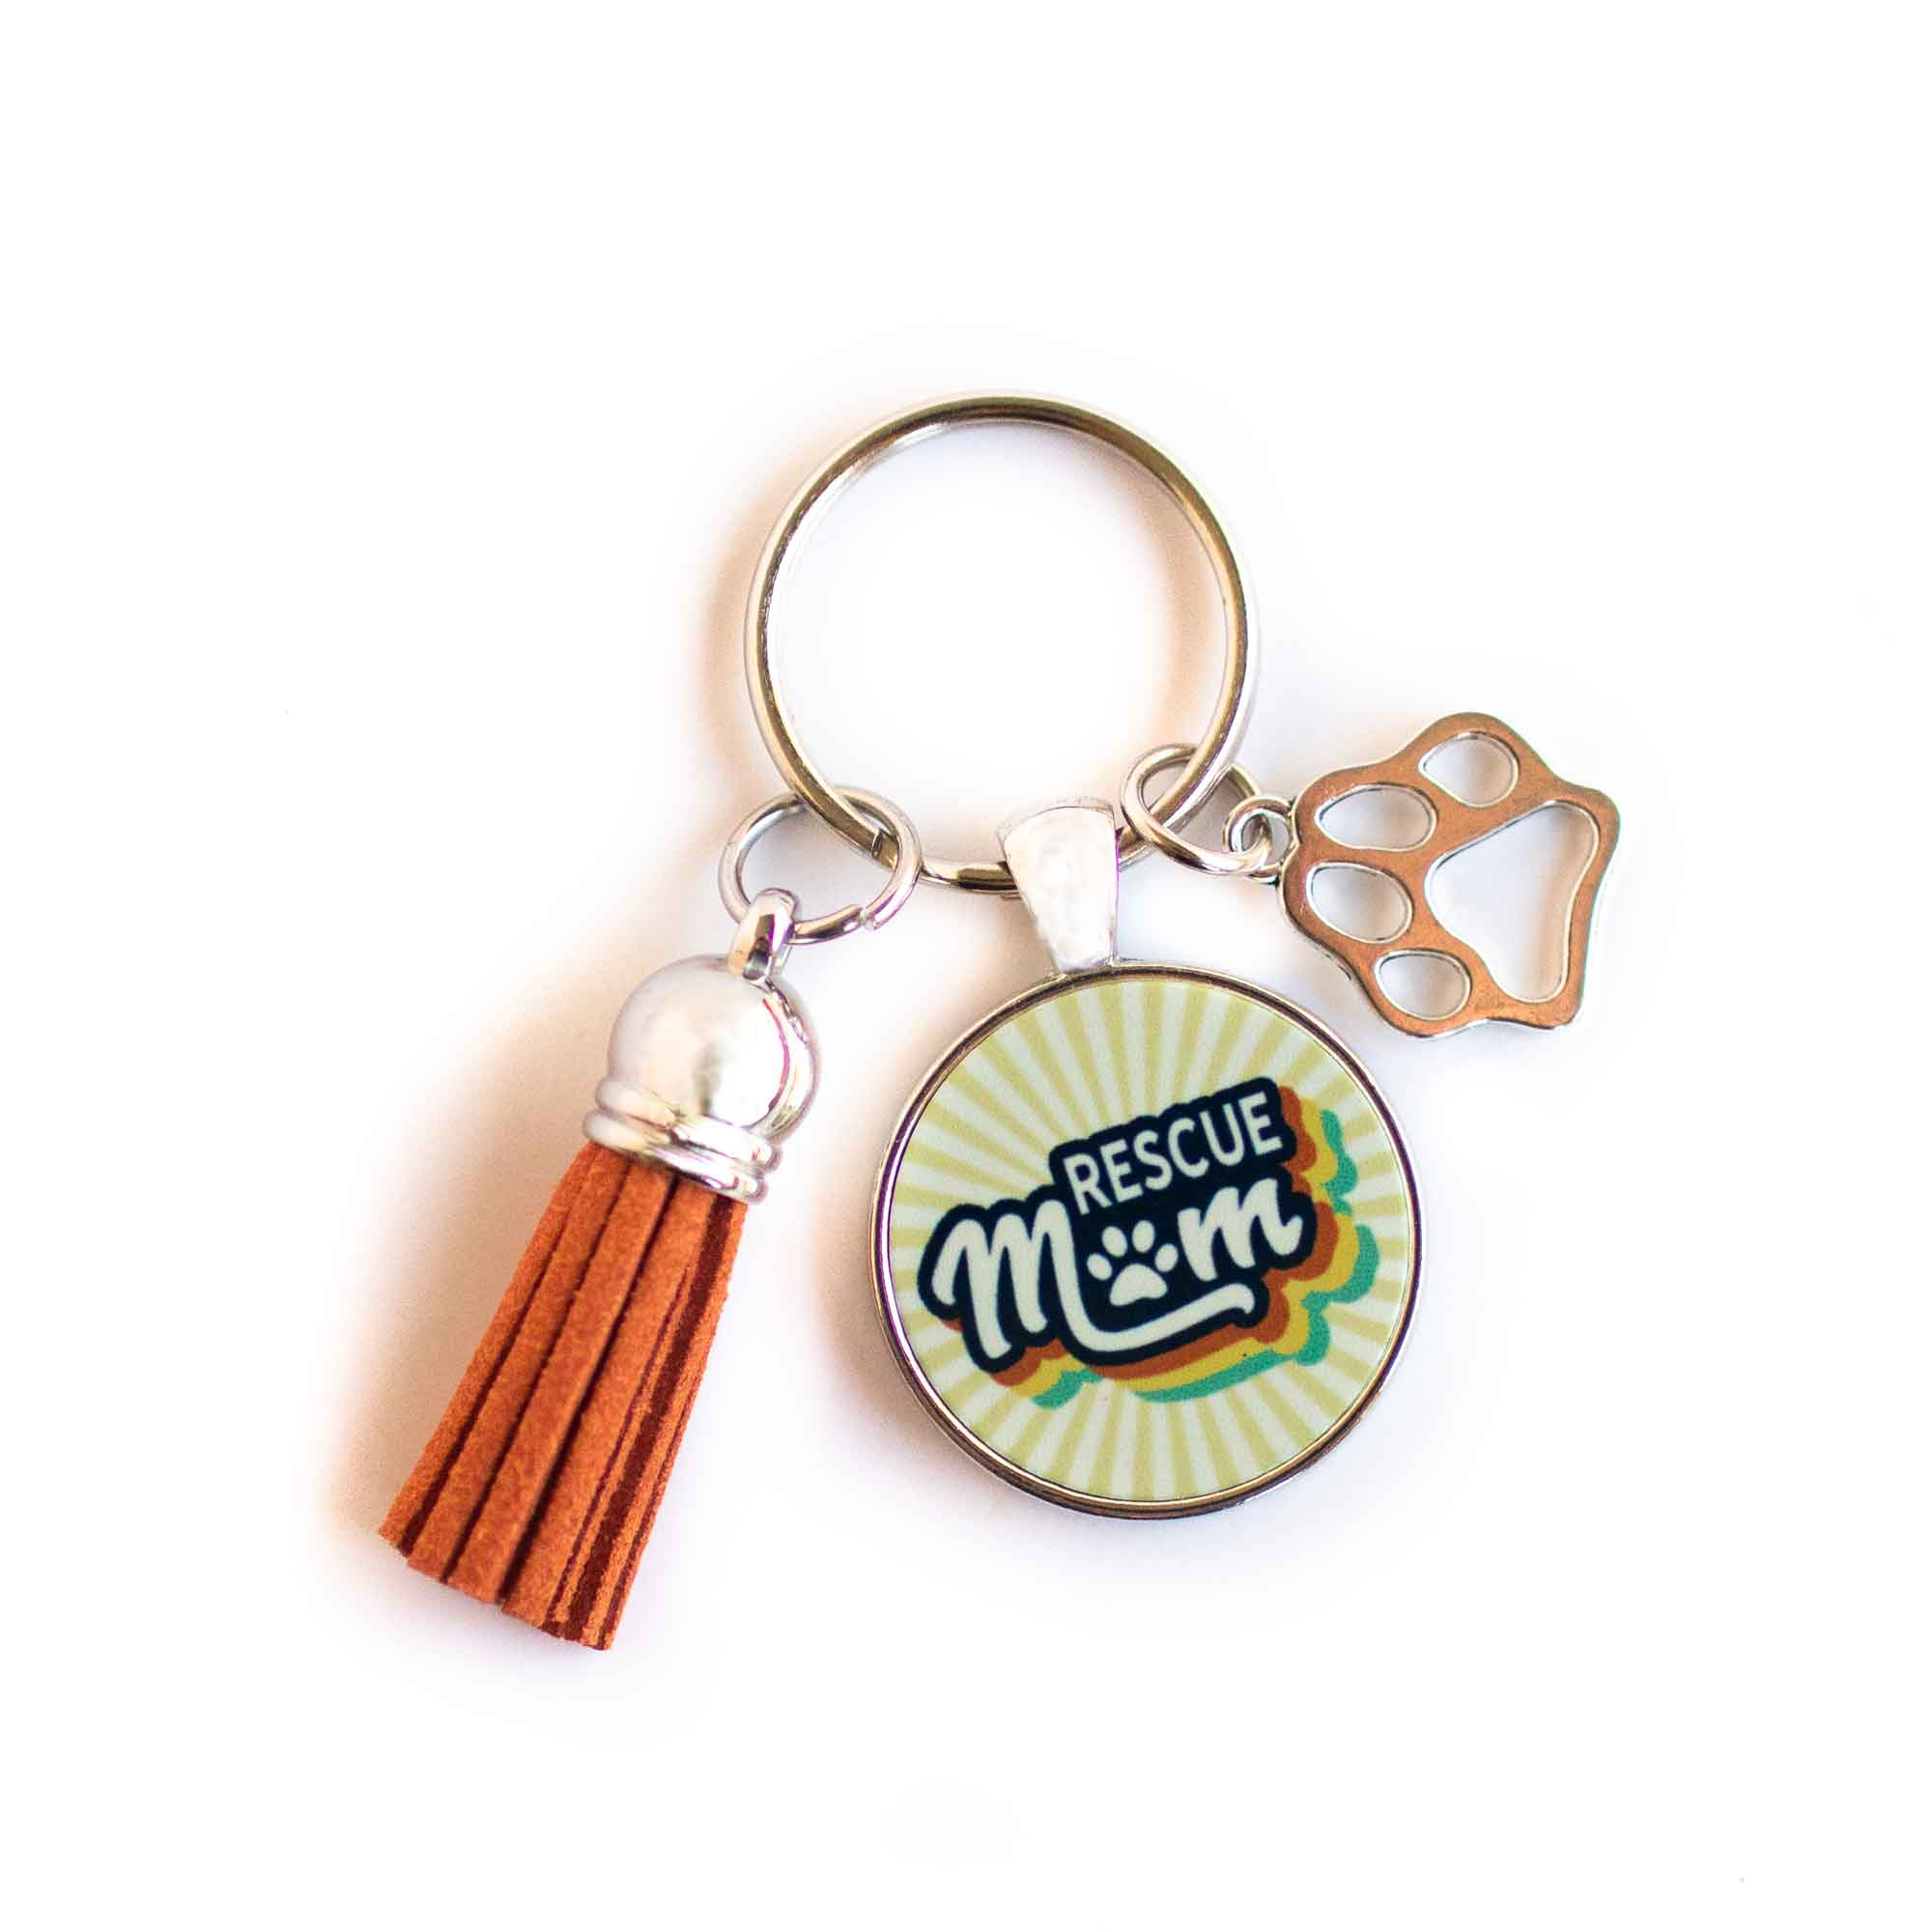 CopyrightPaisleyGroveGIFTS S009a Rescue Mom Keychain with Burnt Orange Tassel and Paw Charm Retro Vintage Style